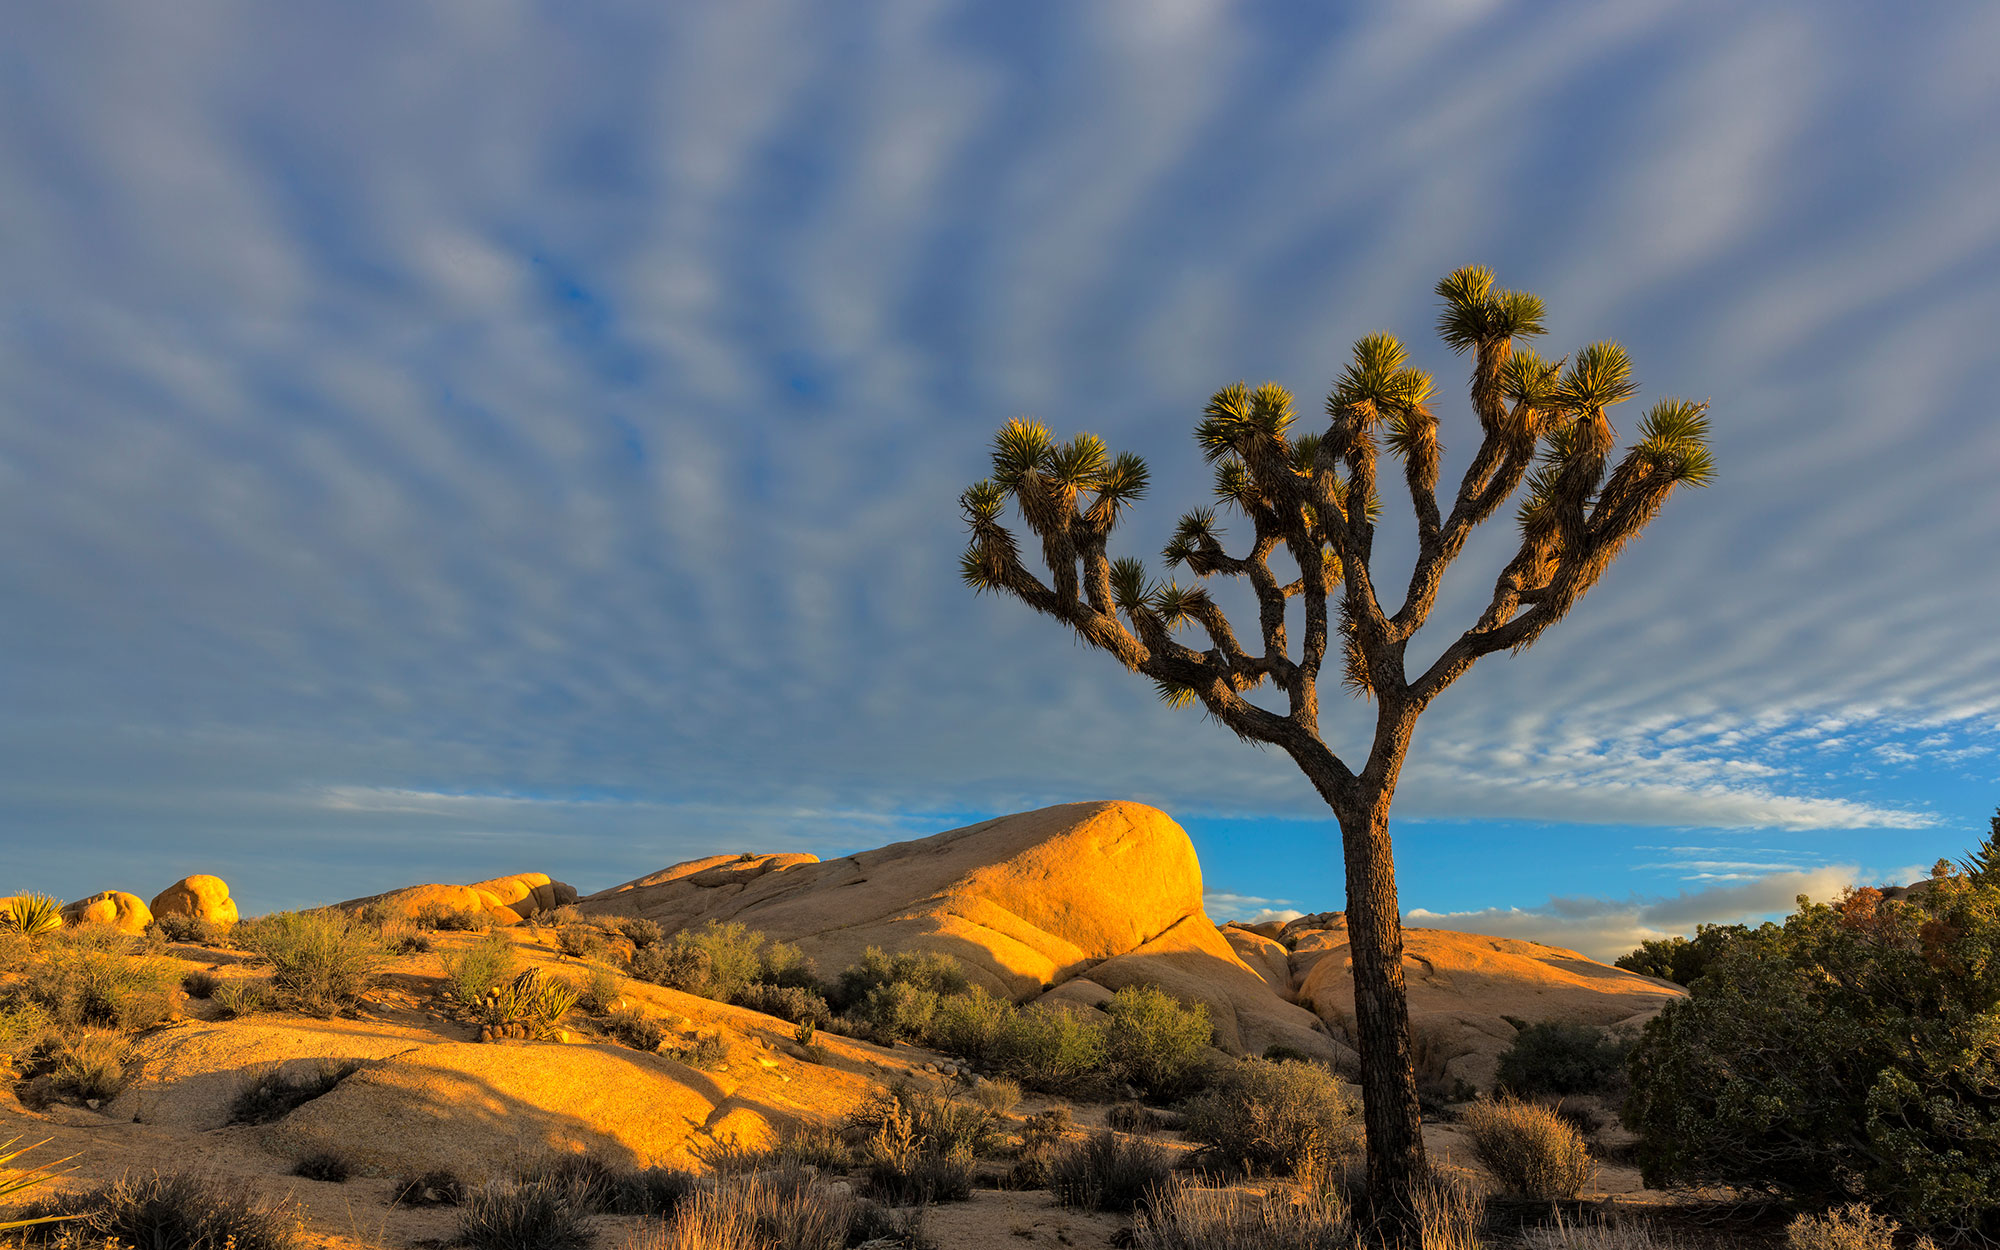 Joshua Trees (Yucca brevifolia) in sunset light in Joshua Tree National Park, California, USA